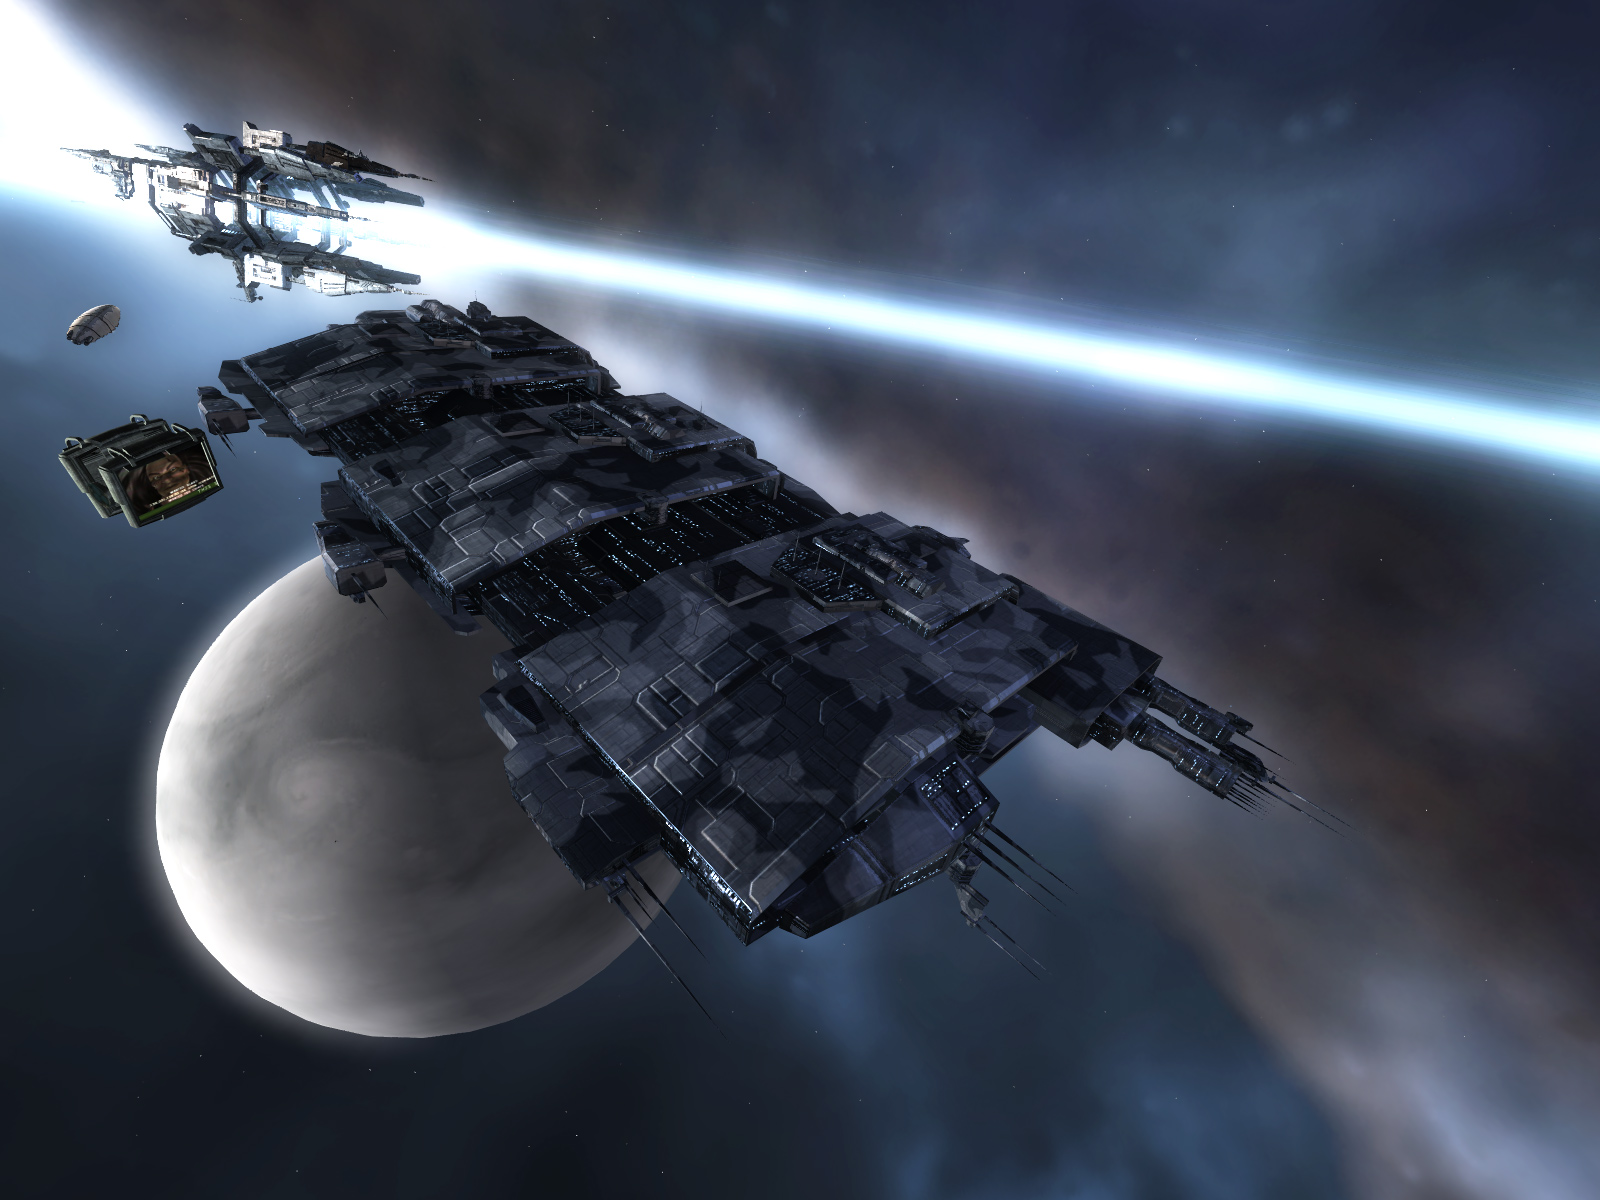 Jump-freighter  - one to choose - Anshar, Ark, Nomad, Rhea from RPGcash